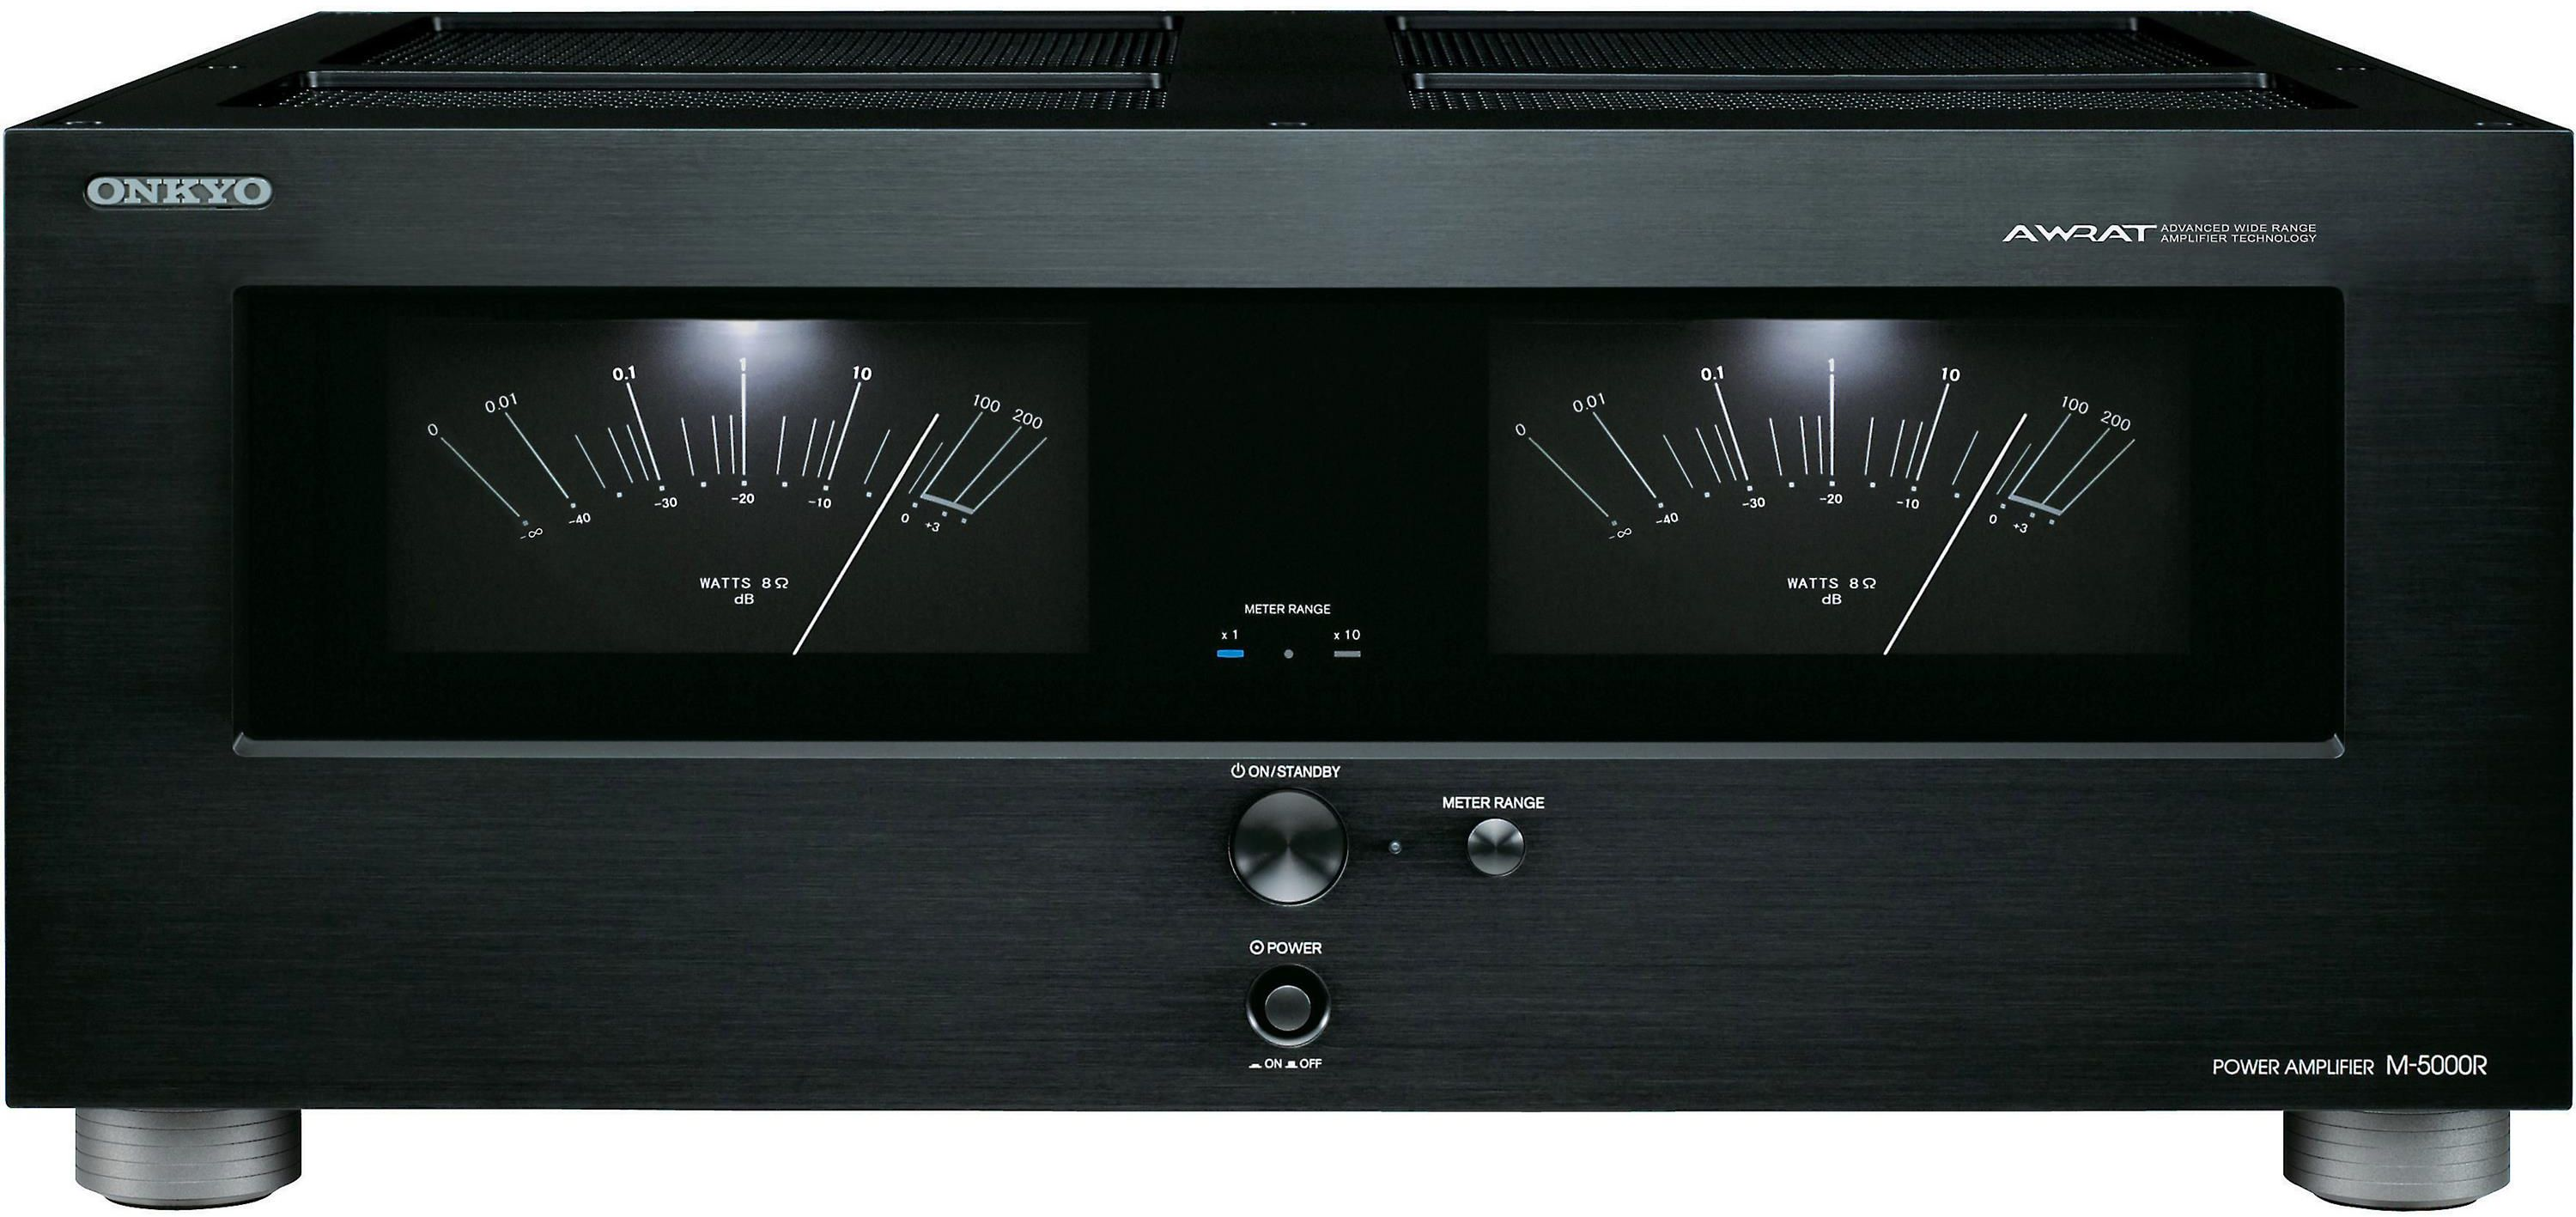 Reviews for Onkyo® Reference Series Power Amplifier-M-5000R